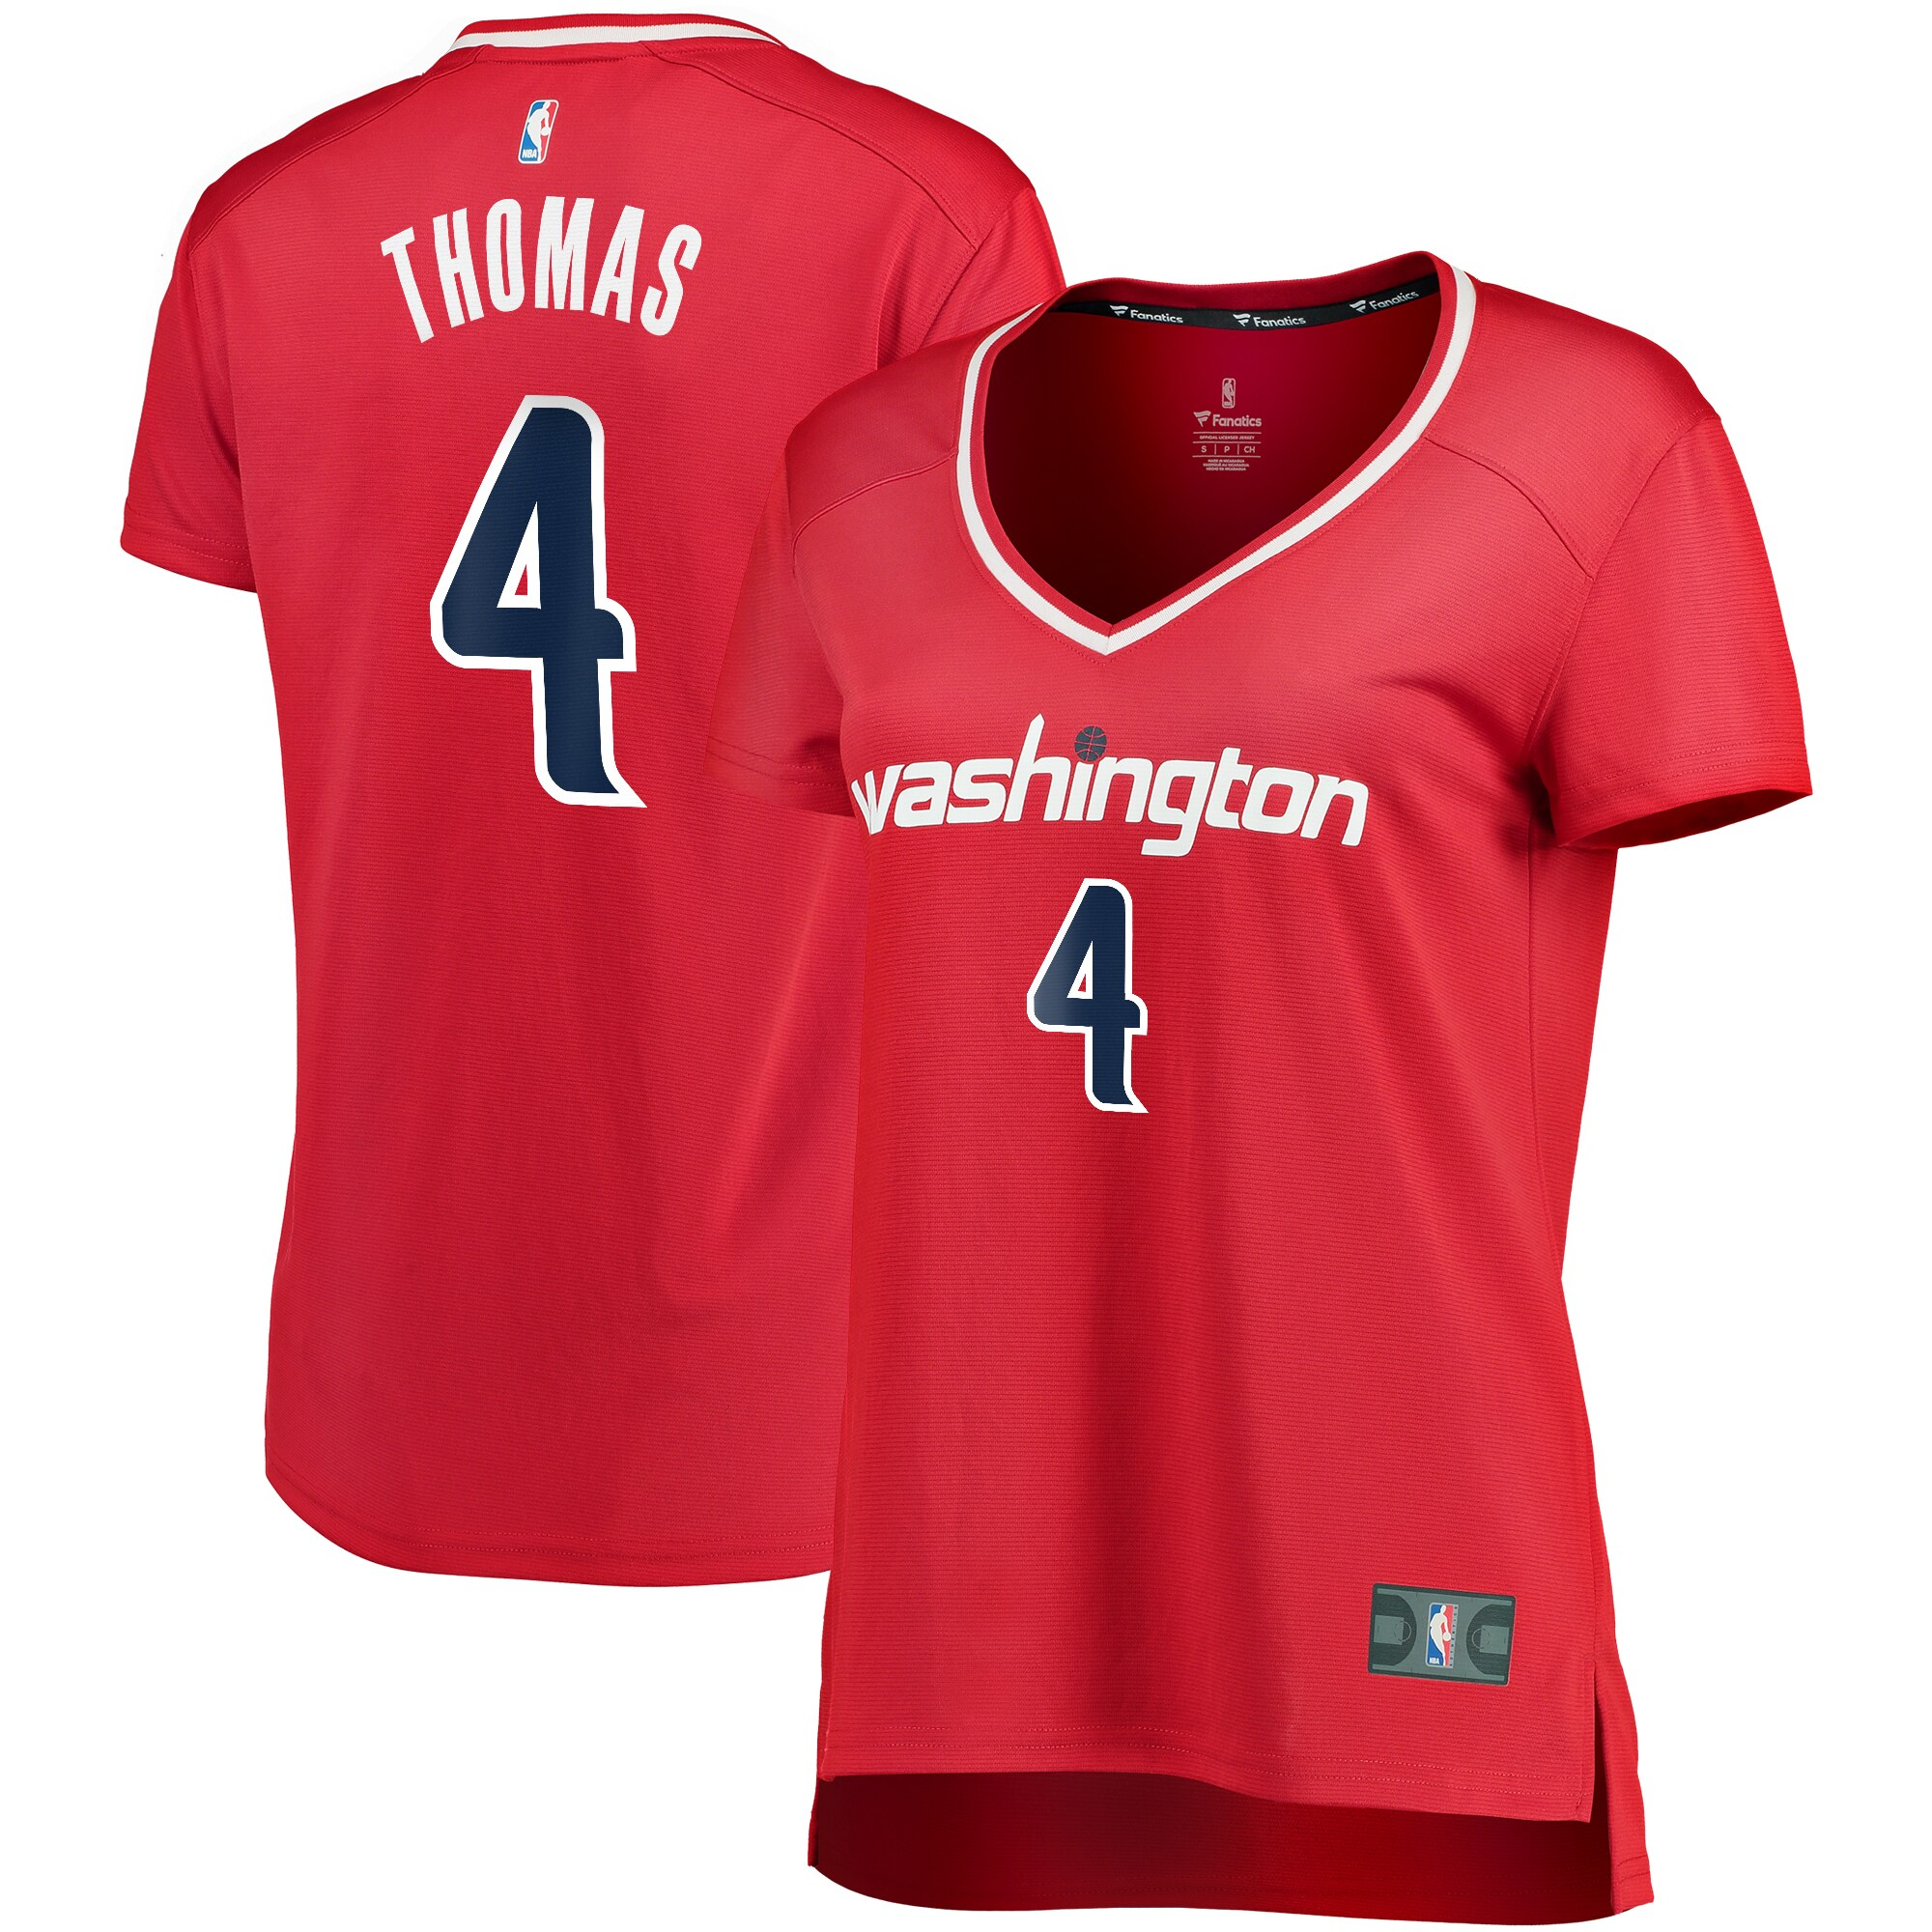 Isaiah Thomas Washington Wizards Fanatics Branded Women's Fast Break Replica Player Jersey - Icon Edition - Red